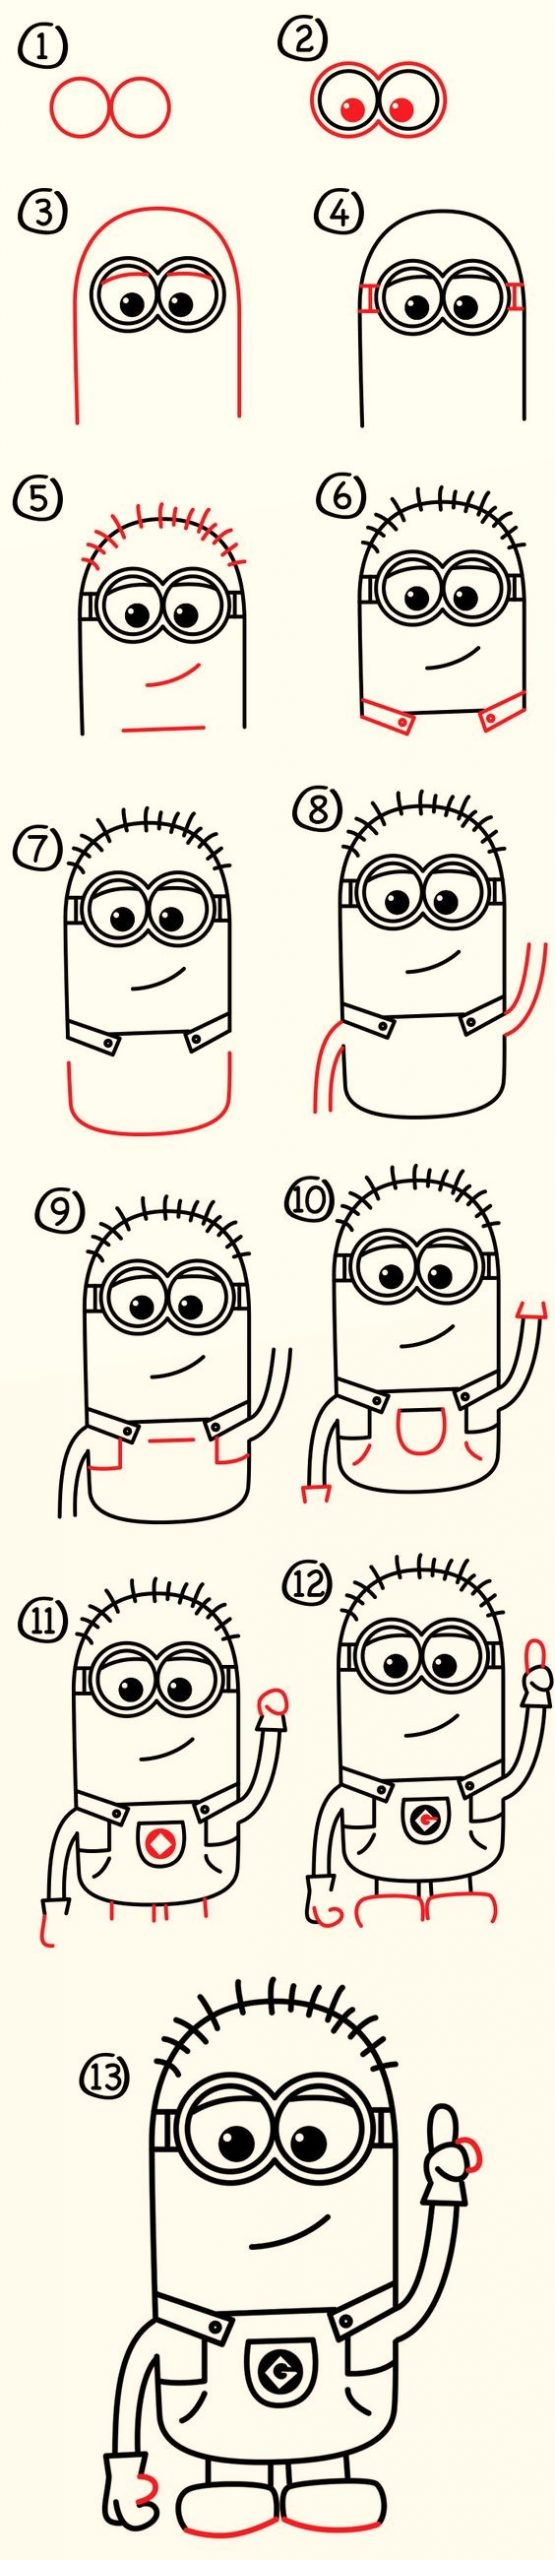 Minion - Step by Step Guide to Draw